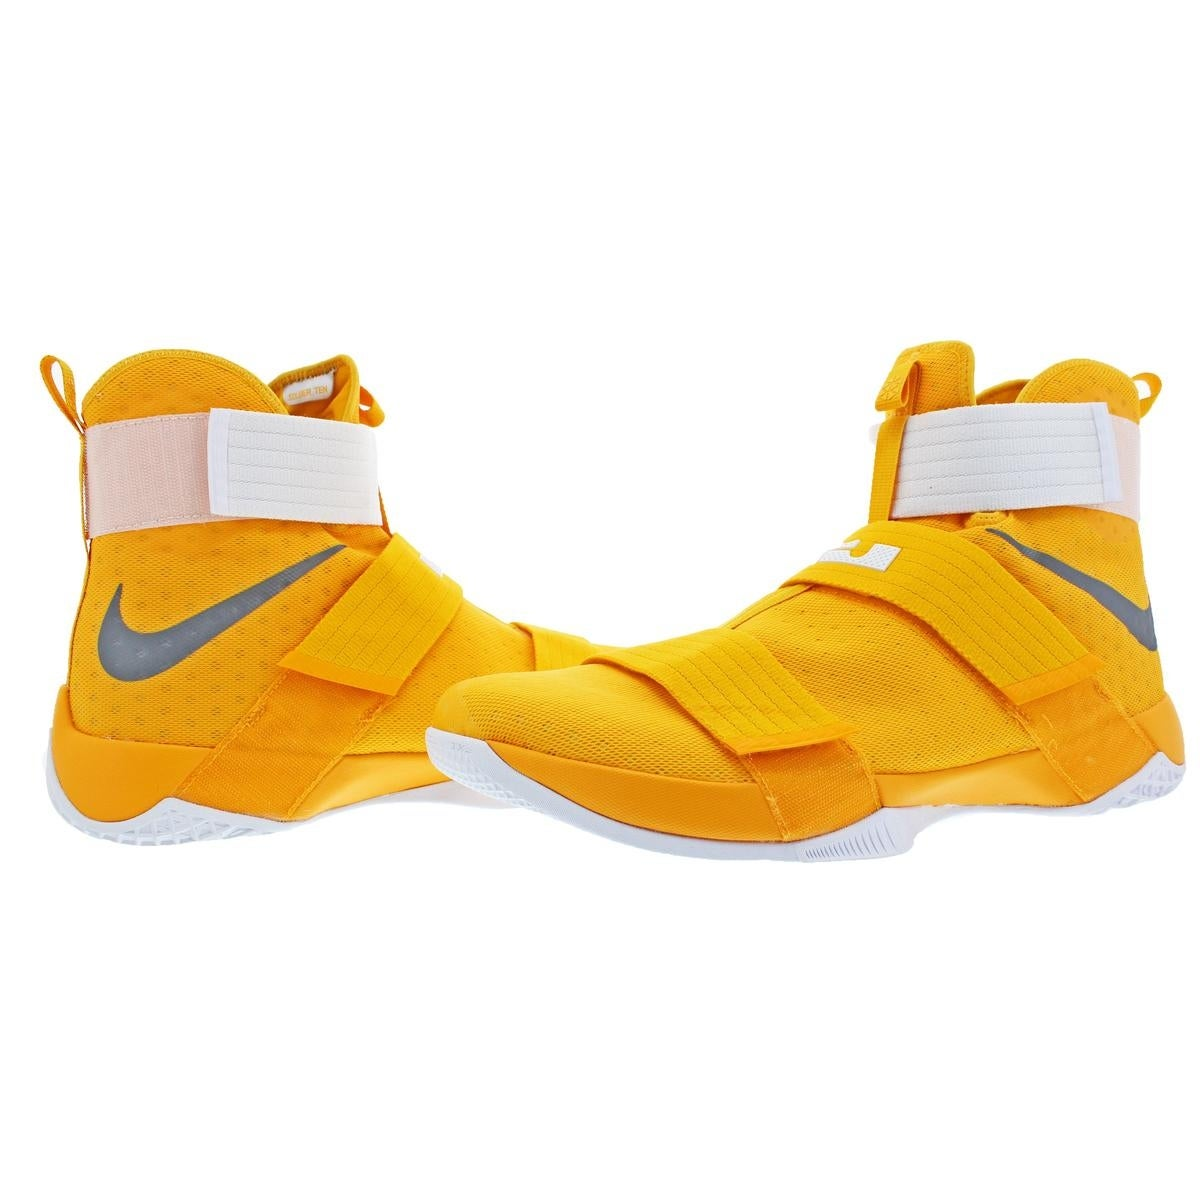 new arrival 6d95a 72d68 ... sneakers 6f3f1 95d90 low price shop nike lebron soldier 10 mens mesh  high top basketball shoes yellow size 18 ...